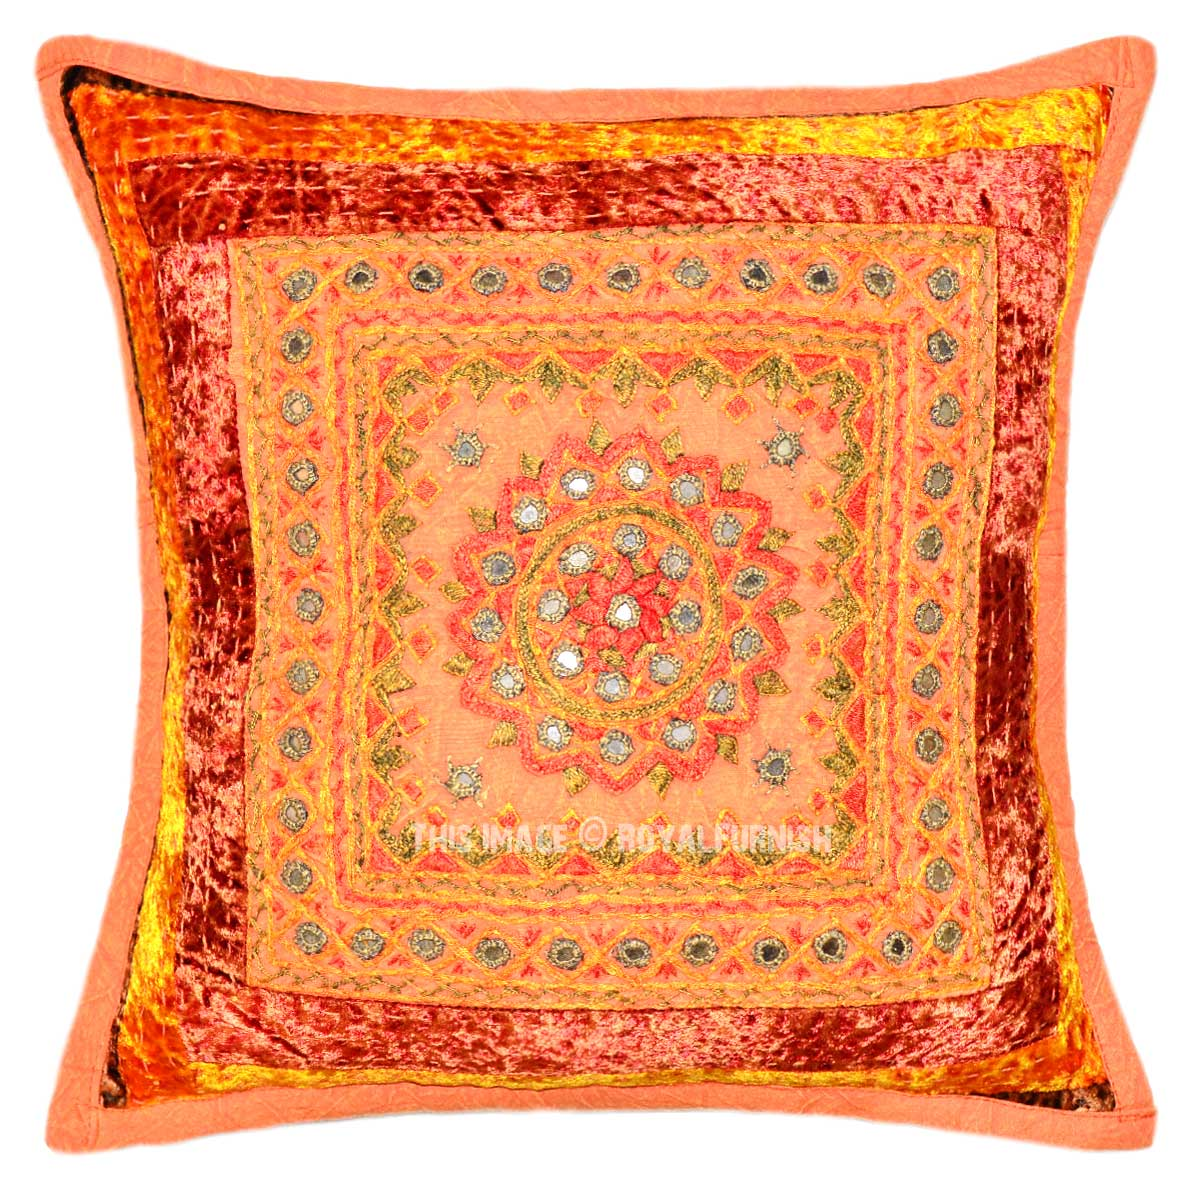 Decorative Pillows With Mirrors : Orange One-Of-A-Kind Unique Mirror Embroidered Square Toss Pillow Case 16X16 - RoyalFurnish.com